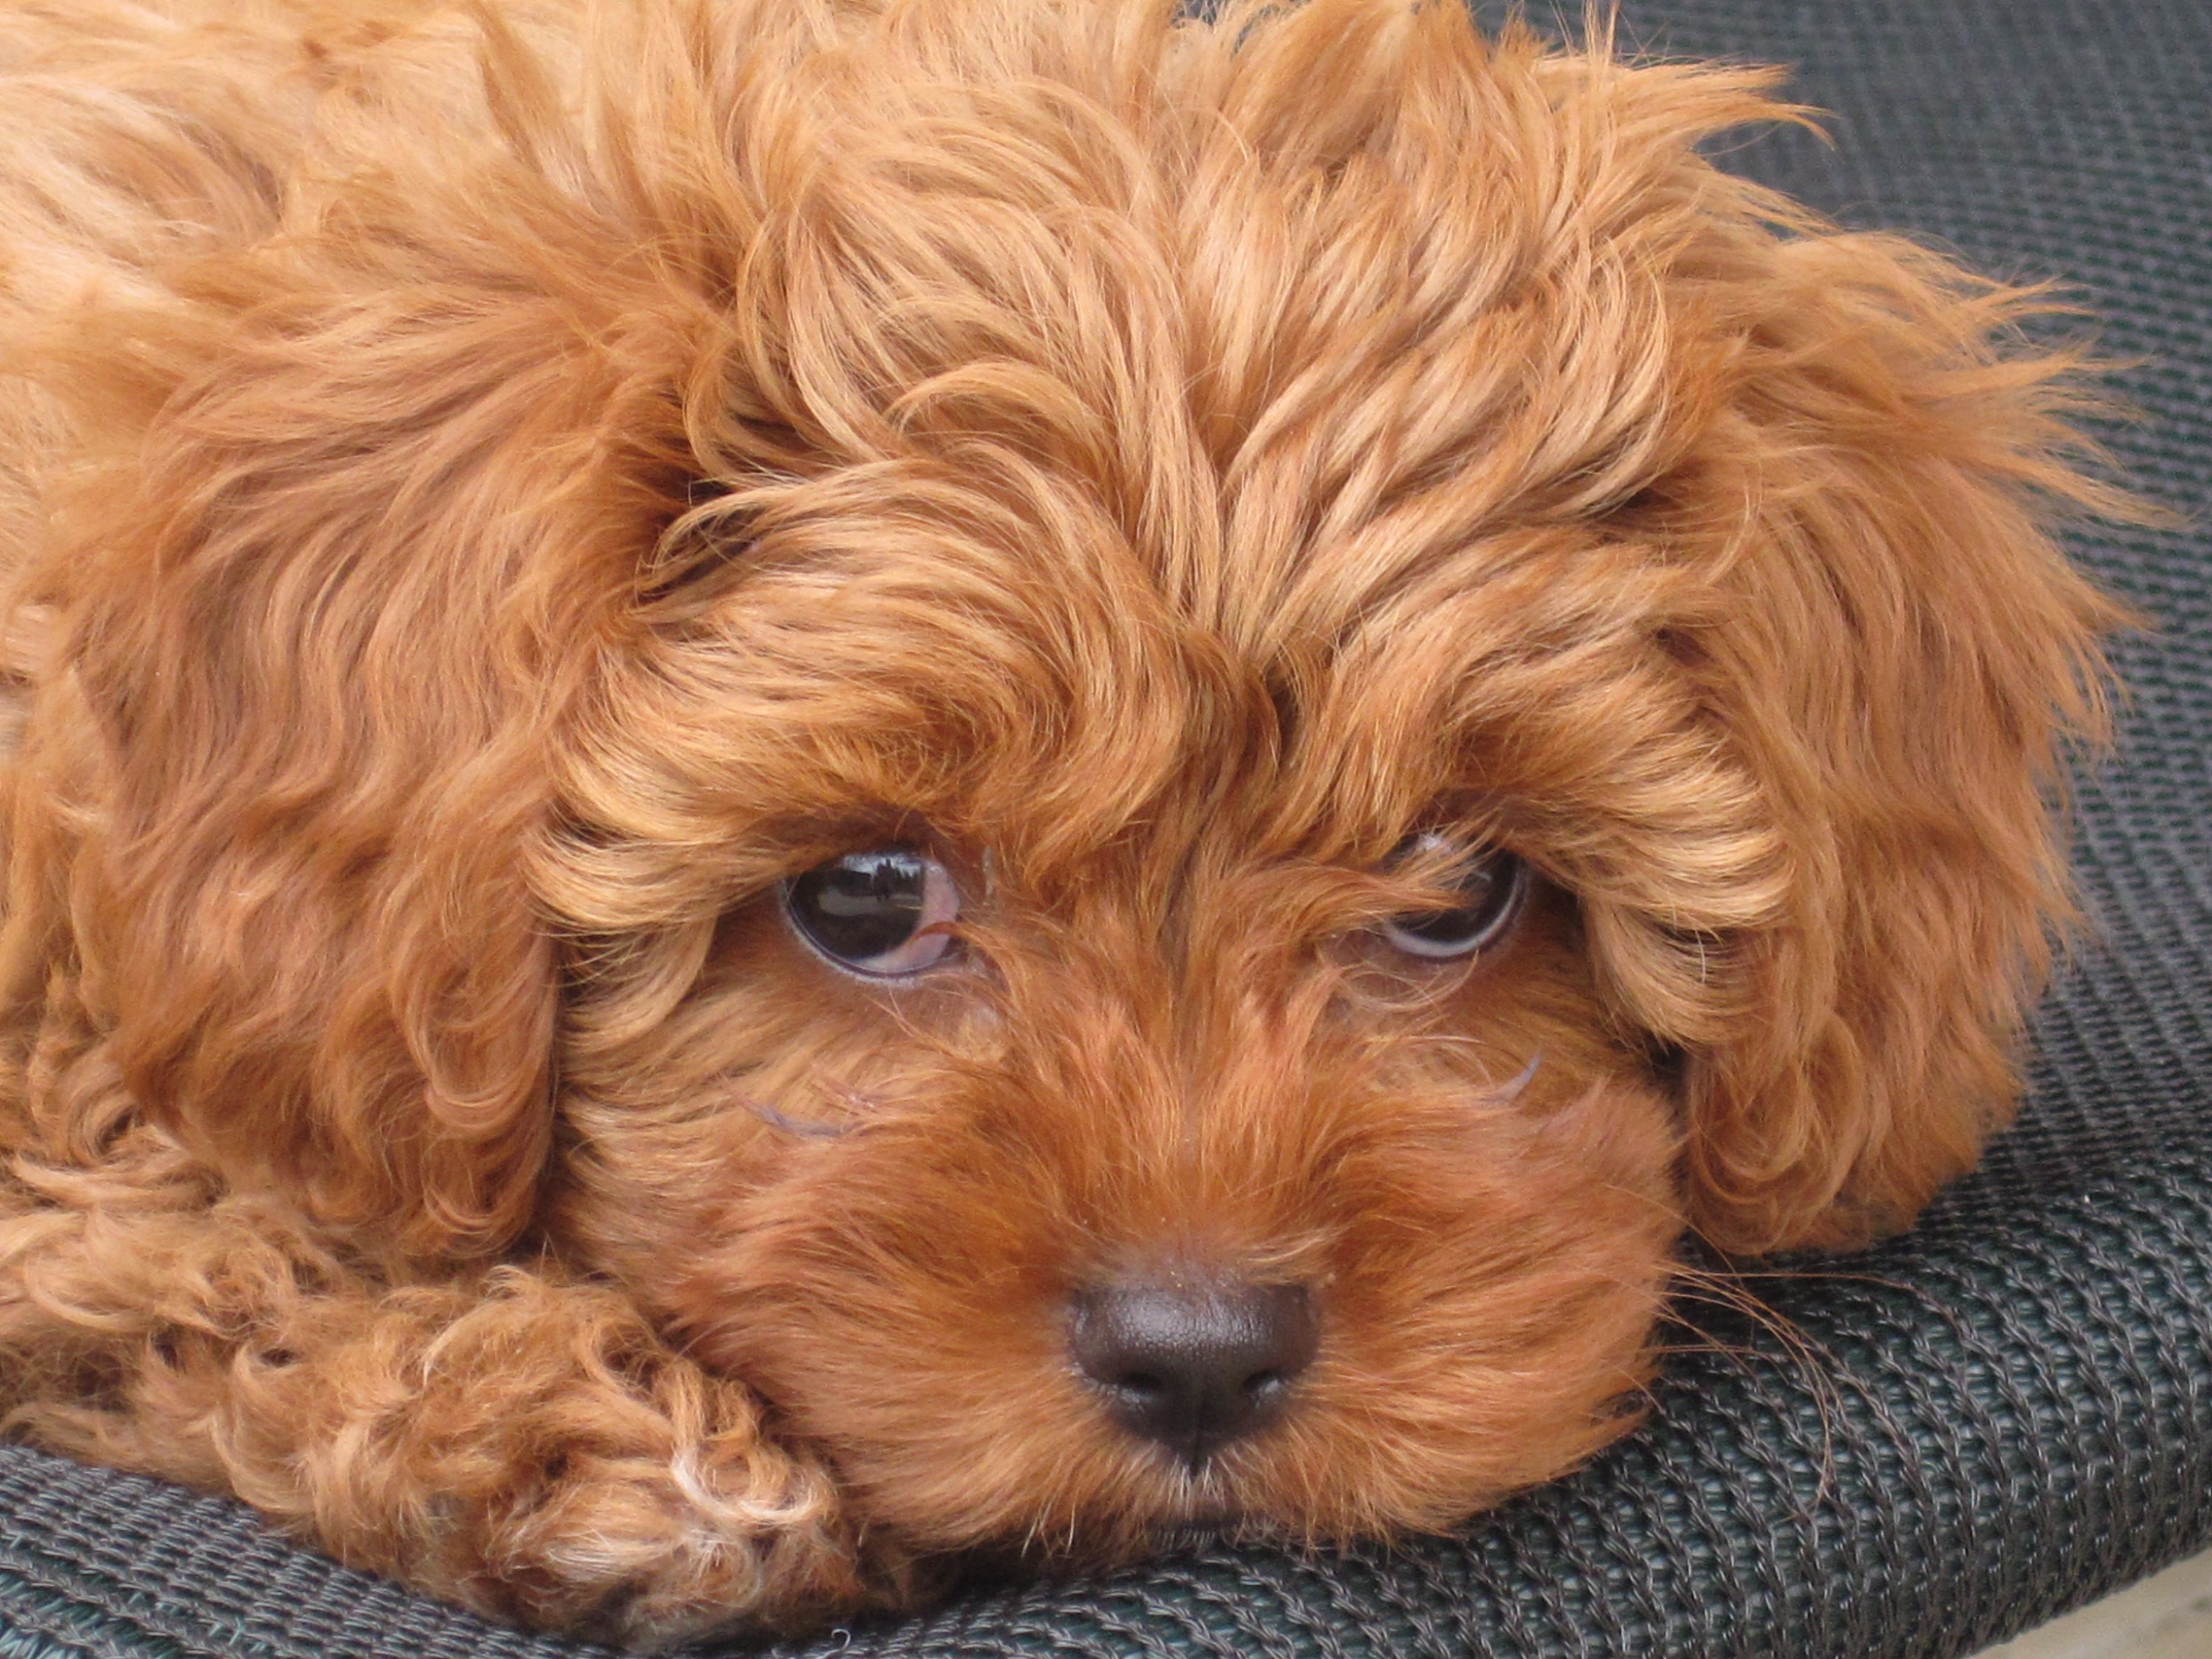 Red Toy Dogs : Red toy cavoodle pocket puppies in their new homes